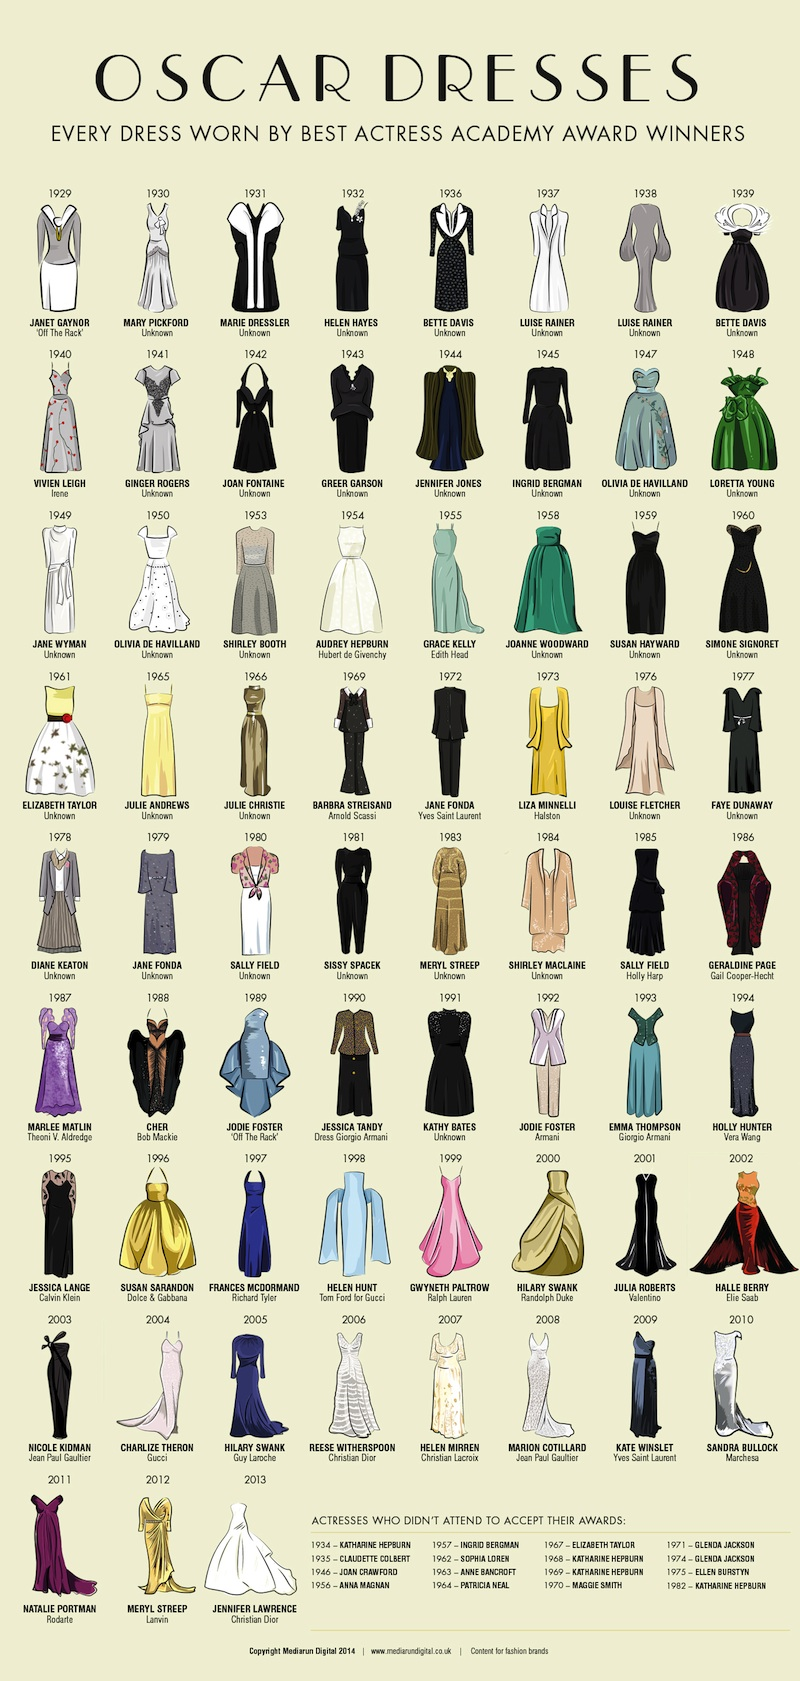 Oscar Sunday Dresses Best Actress Academy Awards 86th Annual